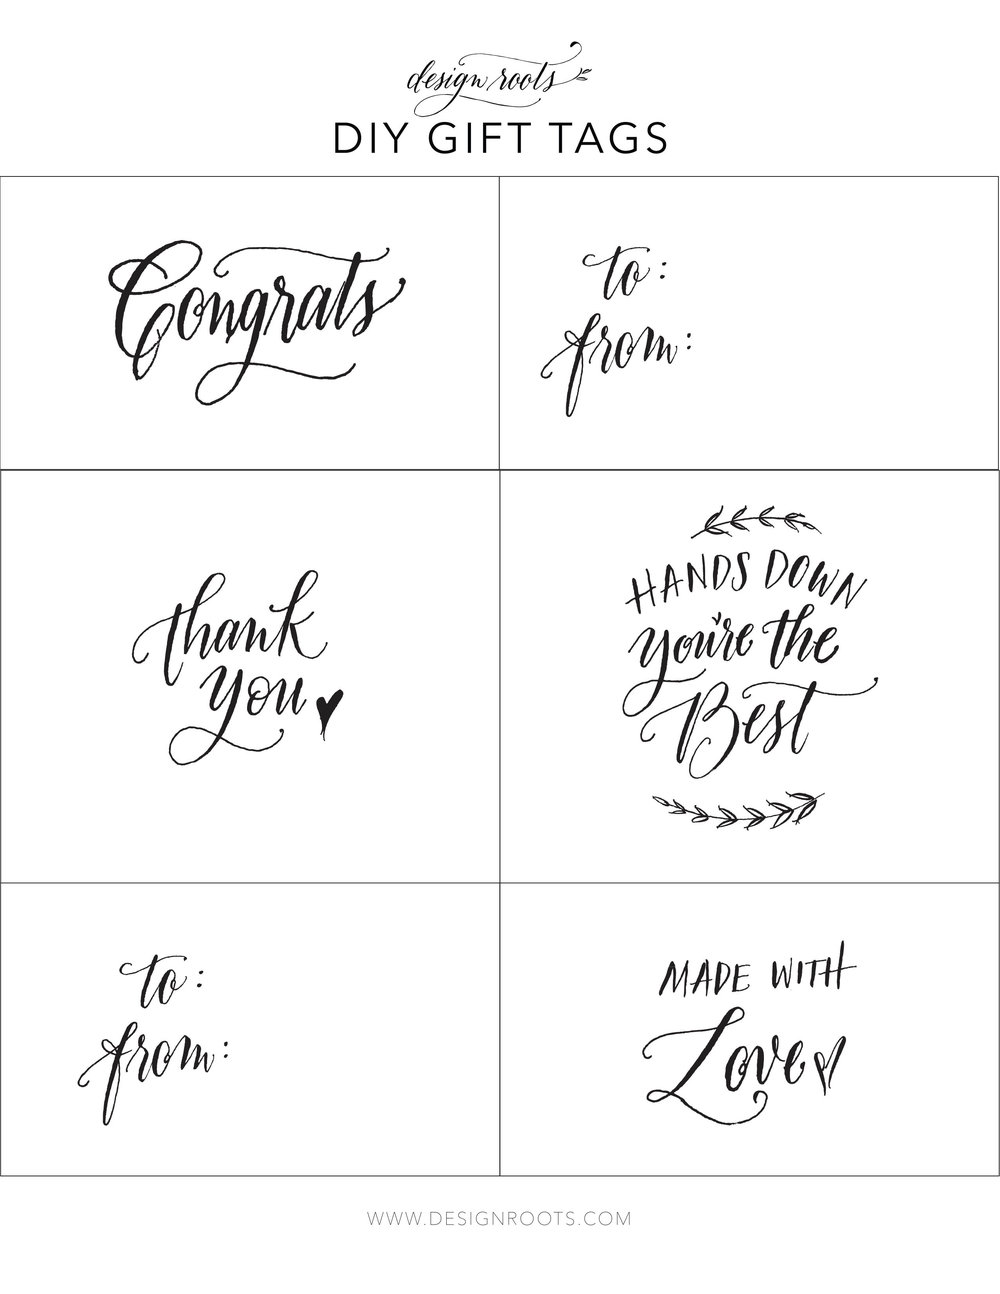 Design Roots Printable gift tags